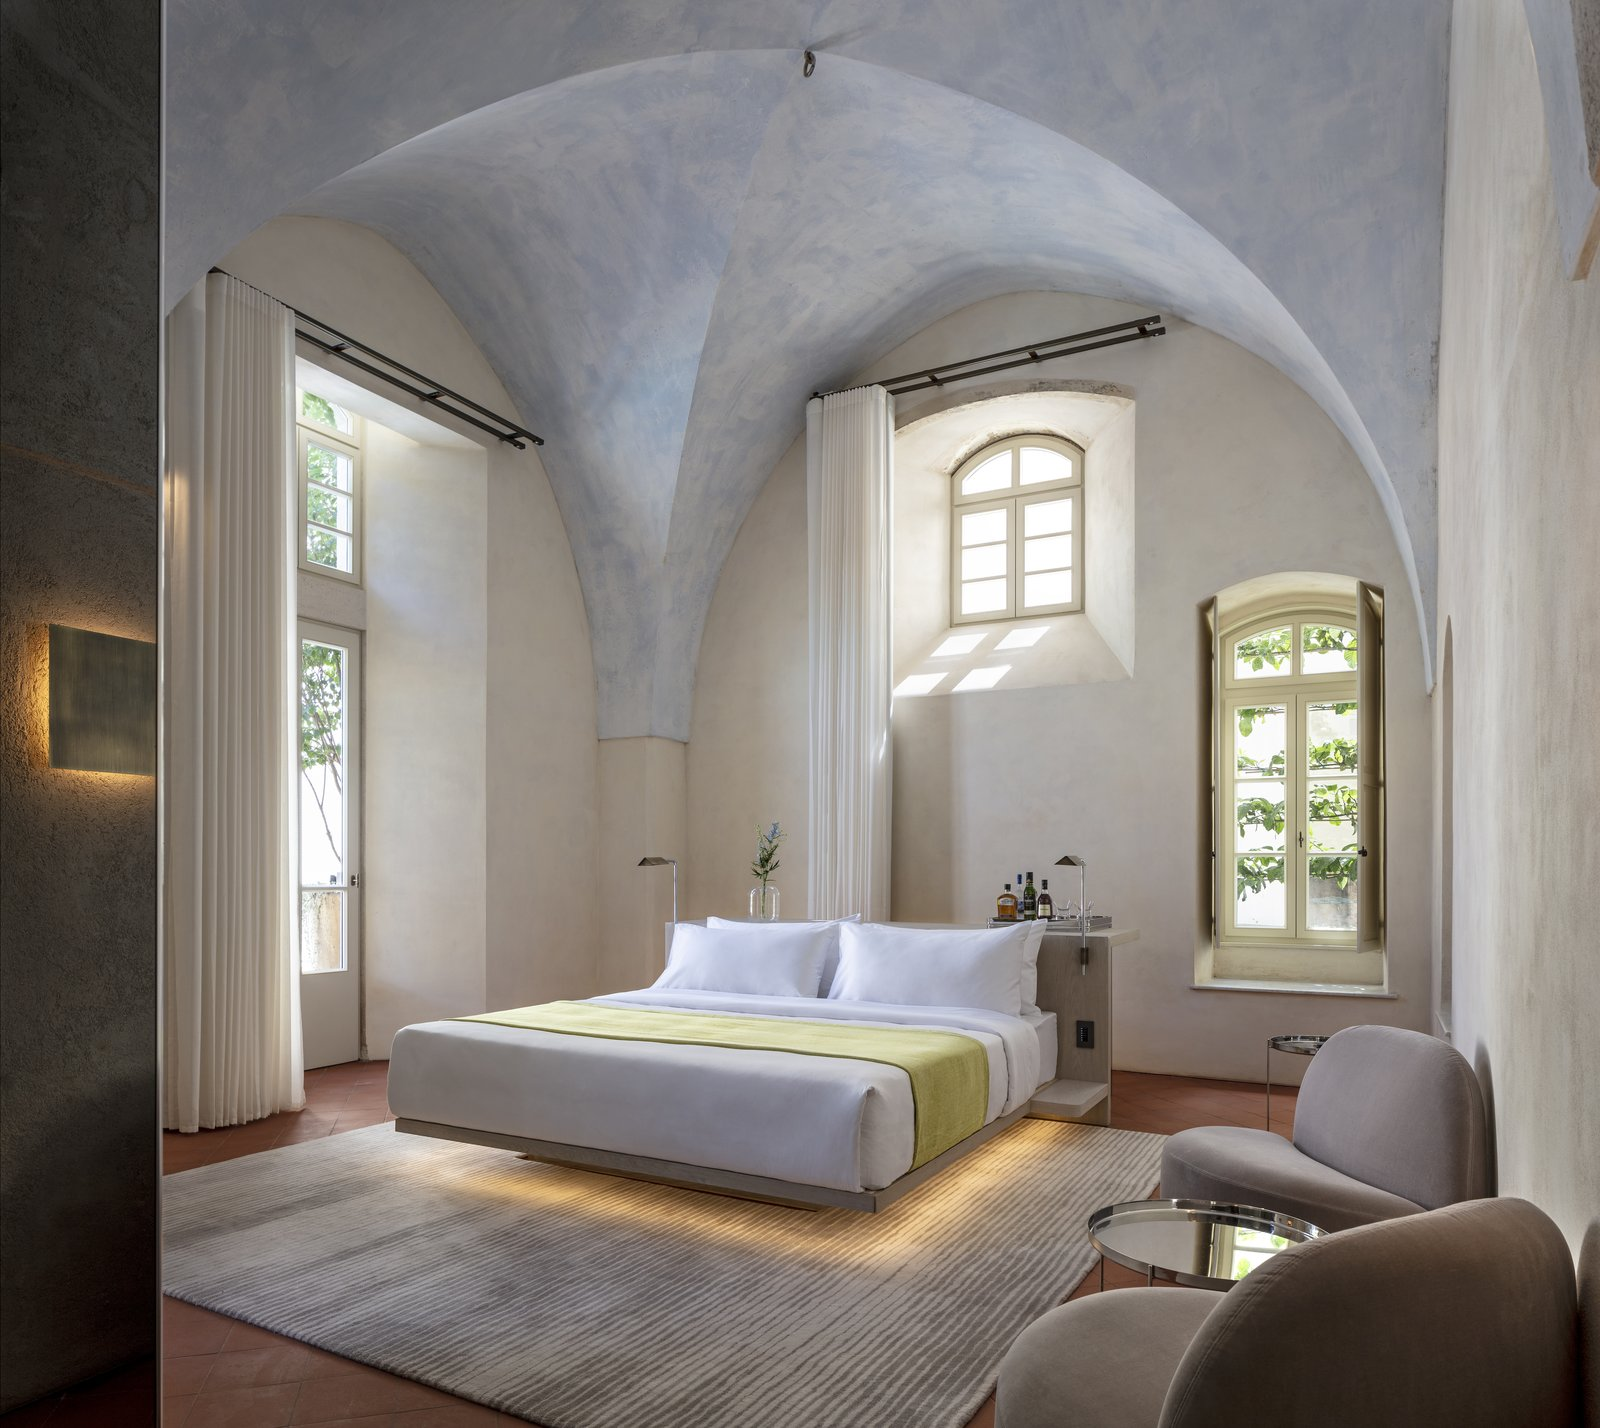 Bedroom, Chair, Rug Floor, Wall Lighting, and Bed The rooms boast the same contemporary yet historic feel. This is the Jaffa Room.   Jaffa Hotel from John Pawson Turns an Old Hospital and Convent Into a Luxe Hotel in Israel